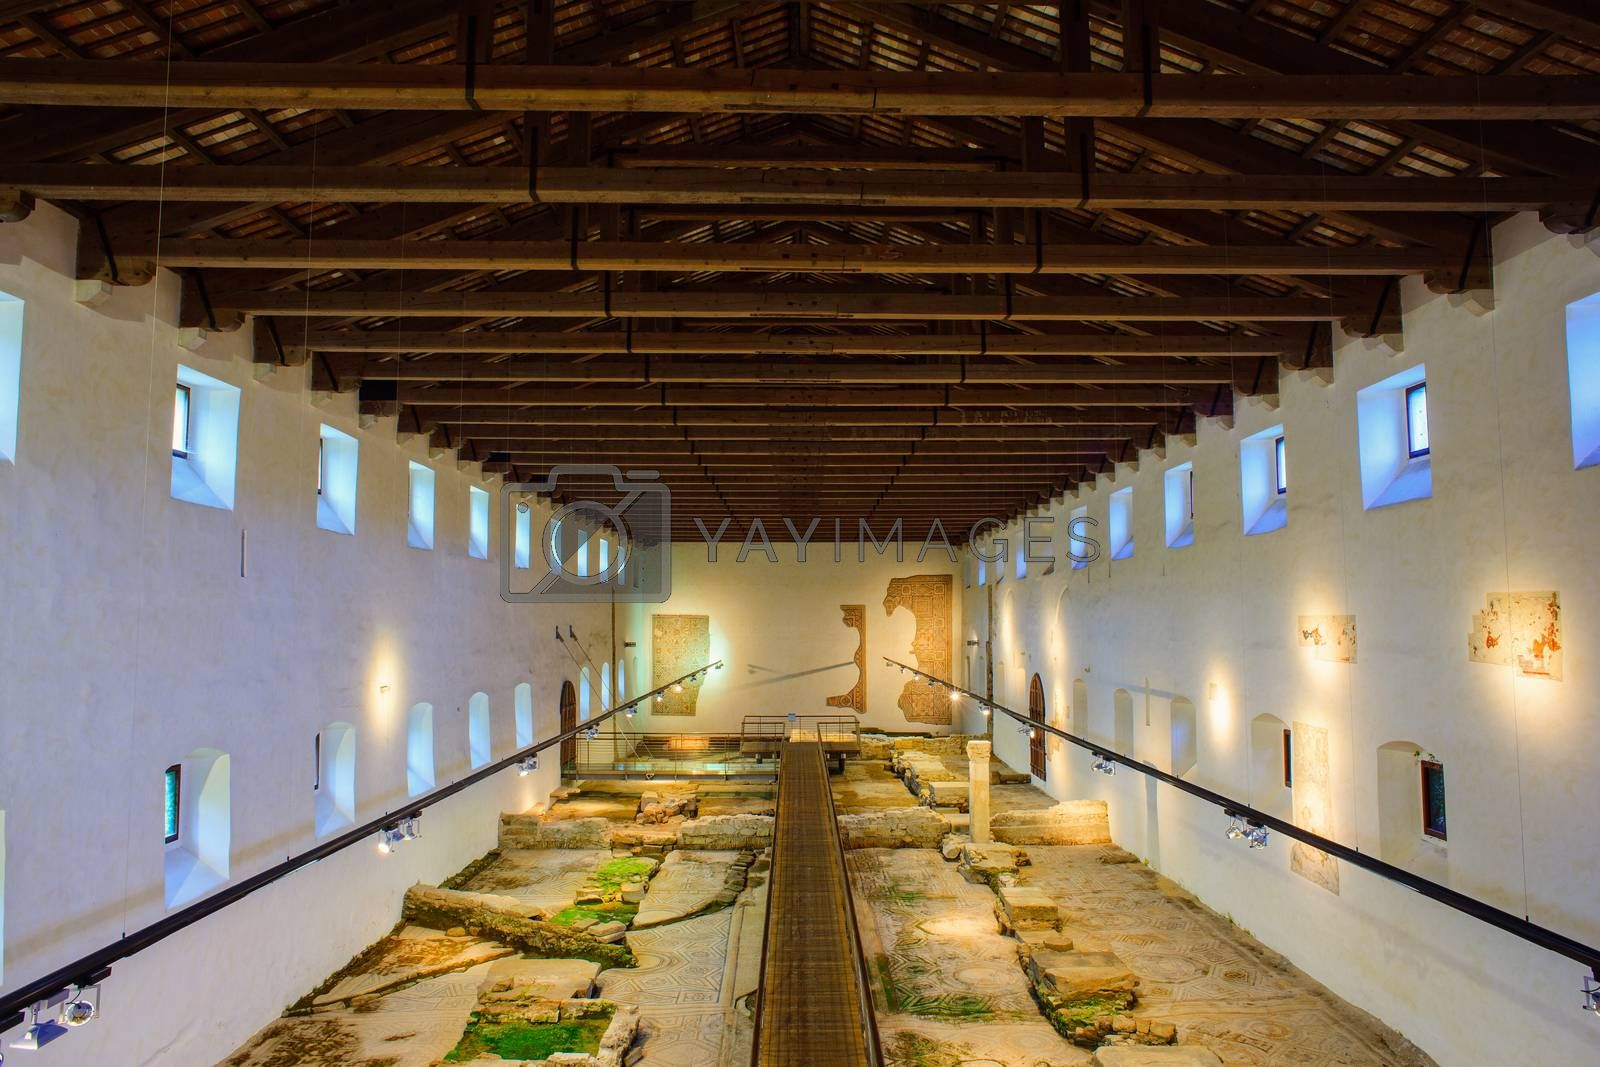 AQUILEIA, ITALY - MAY, 01: Aquileia National Archaeological Museum, UNESCO World Heritage Site on May 01, 2015